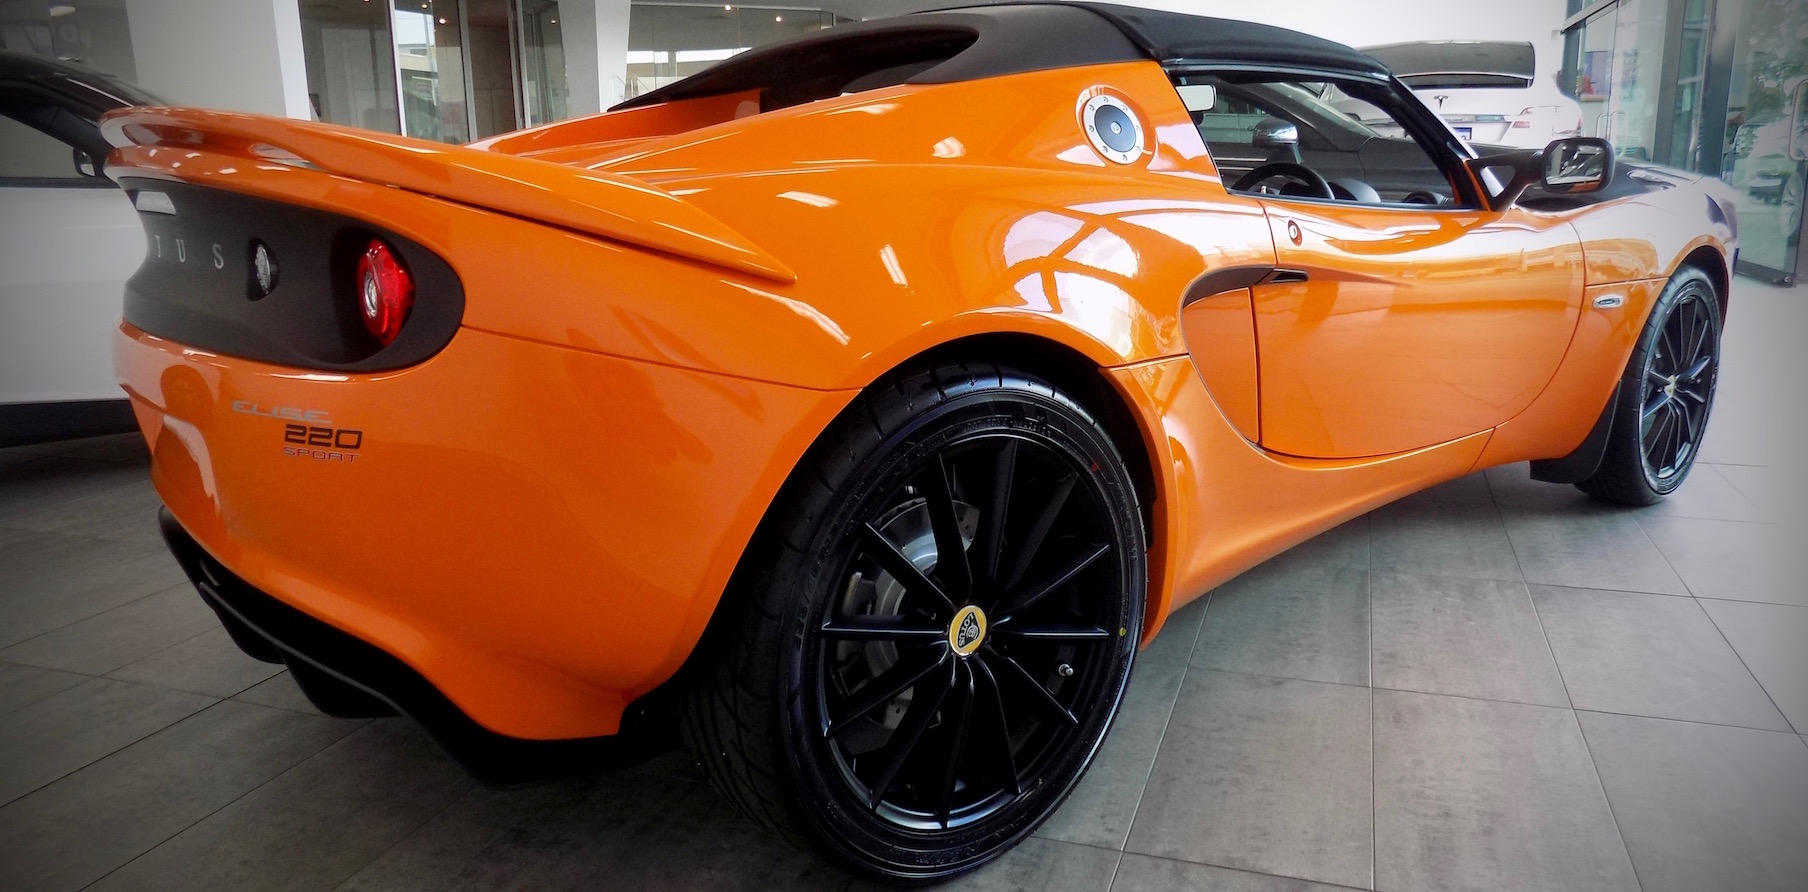 Lotus Elise Sport 220 for Sale in Perth